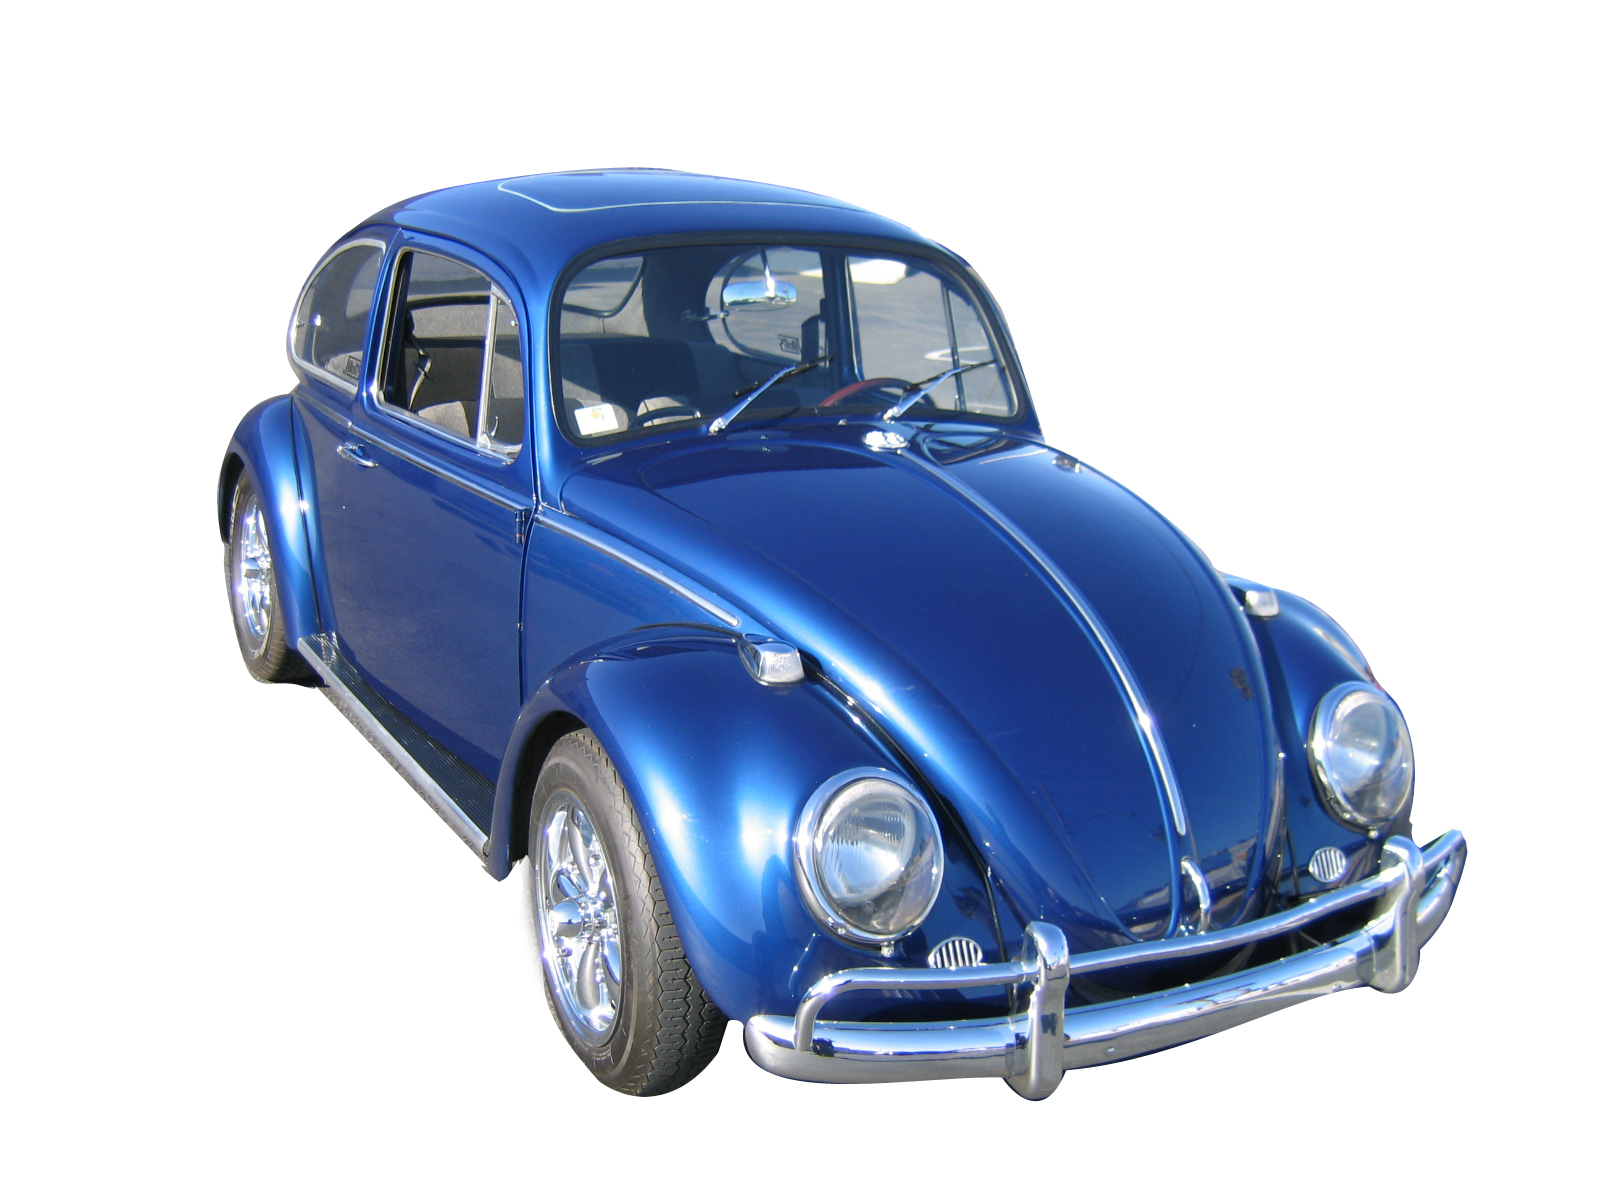 vw parts jbugscom vw beetle parts